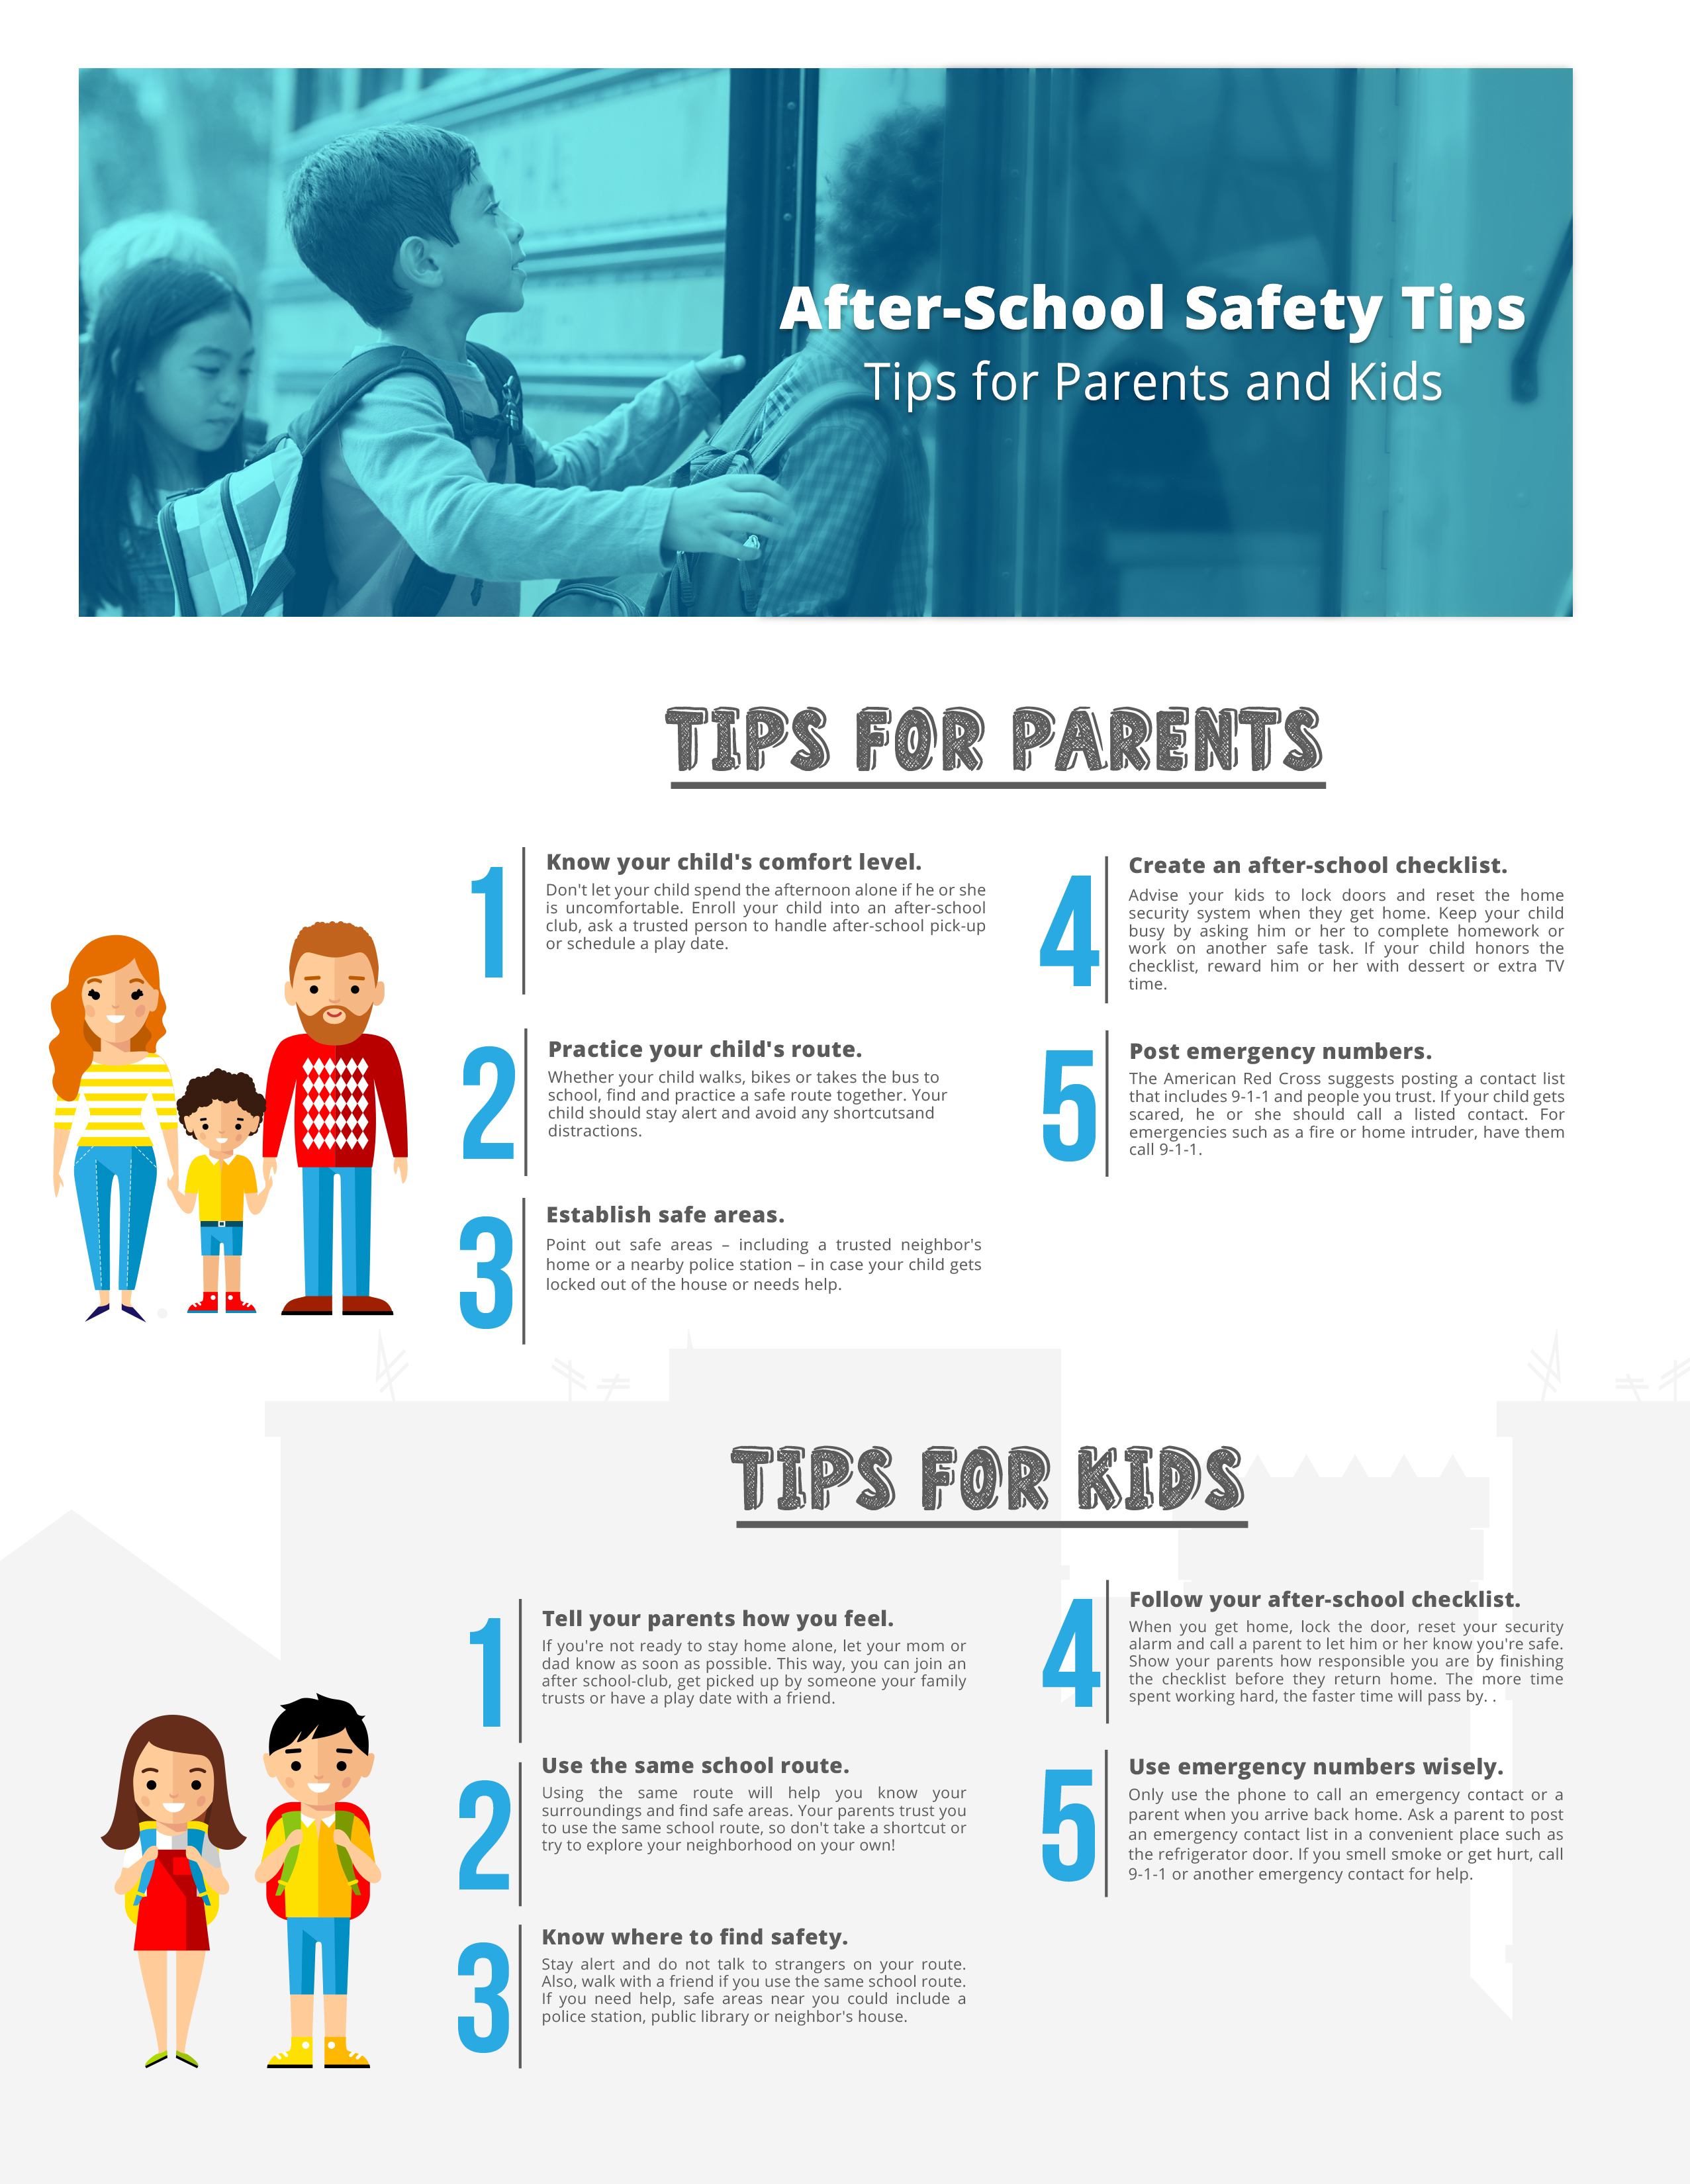 After School Safety Tips For Parents And Kids